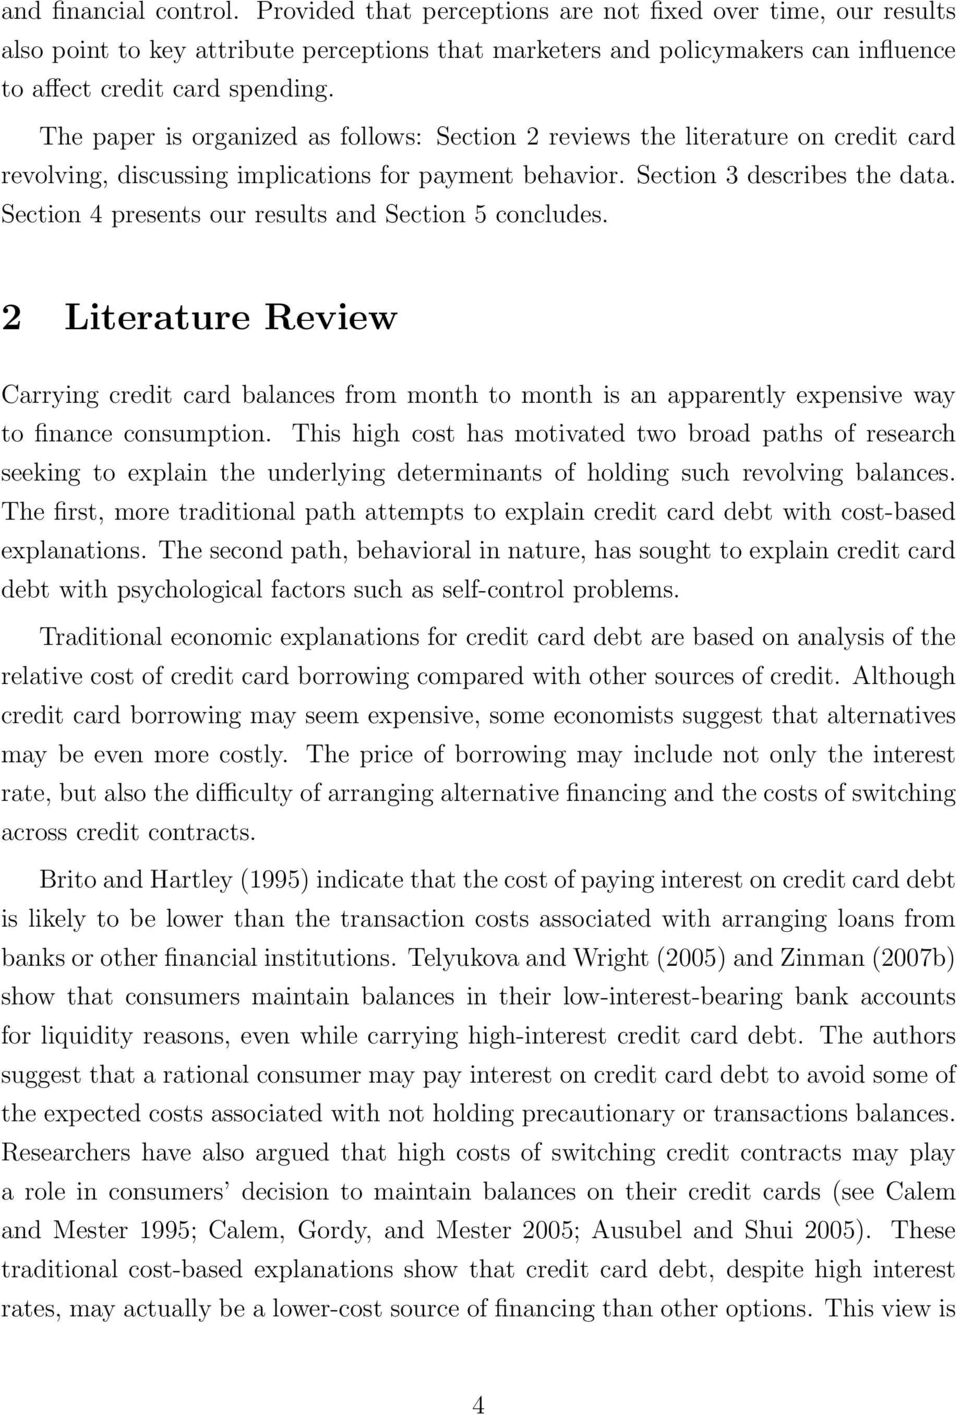 The paper is organized as follows: Section 2 reviews the literature on credit card revolving, discussing implications for payment behavior. Section 3 describes the data.